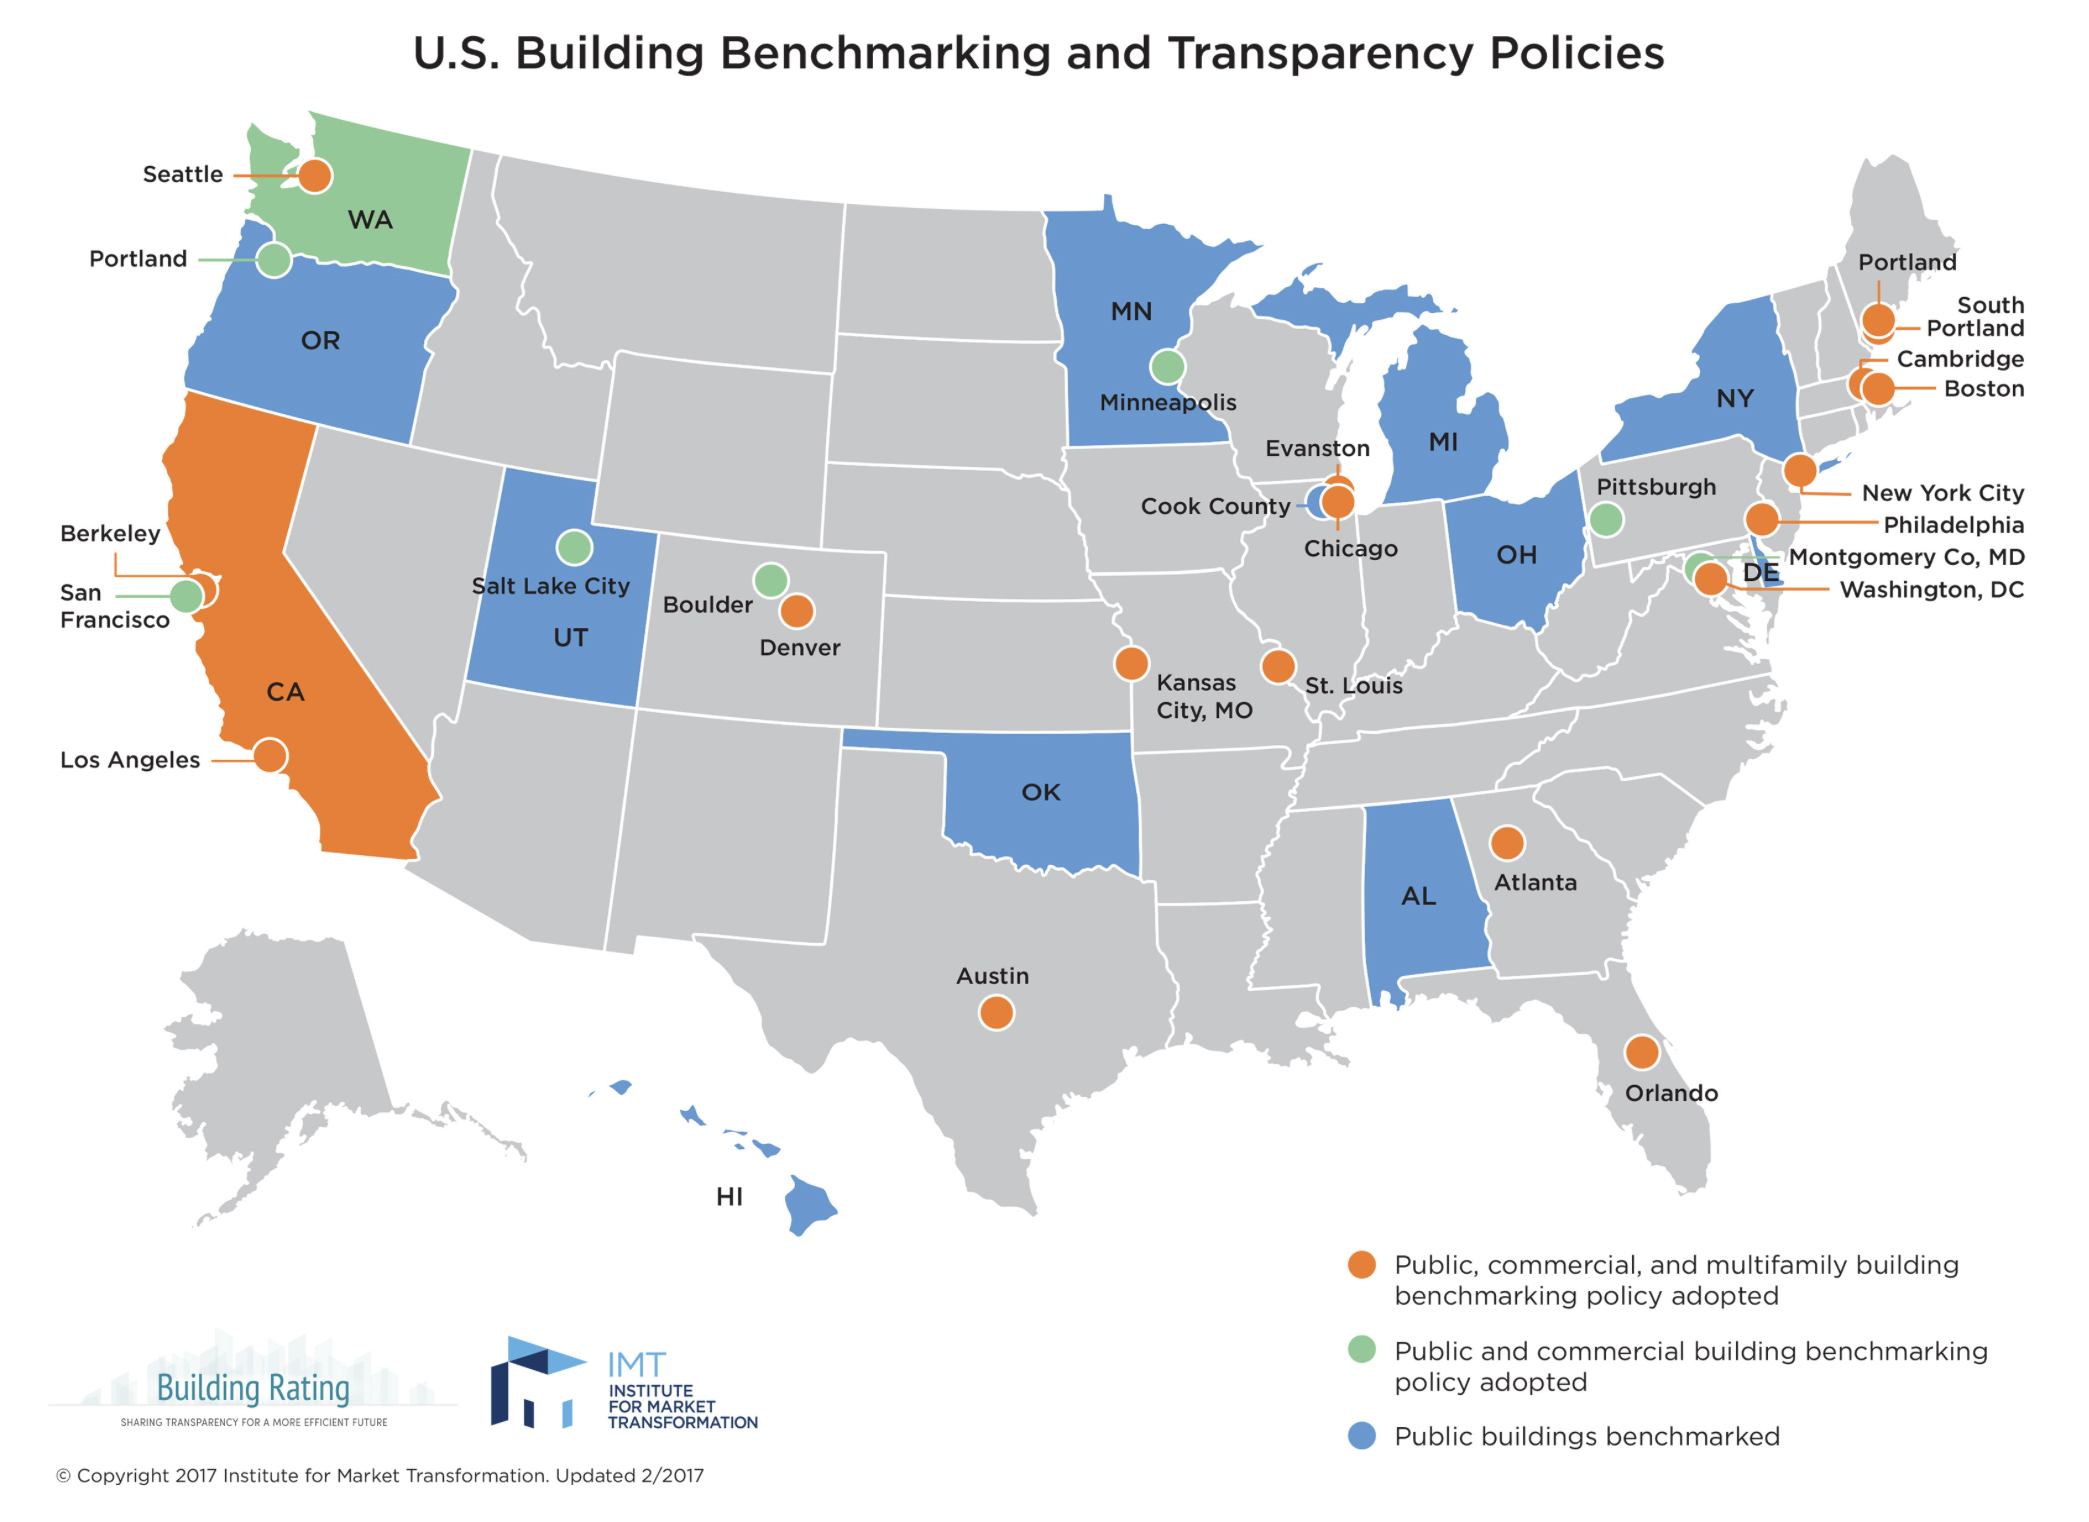 U.S._Bldg_Benchmarking_and_Transparency_Policies_map